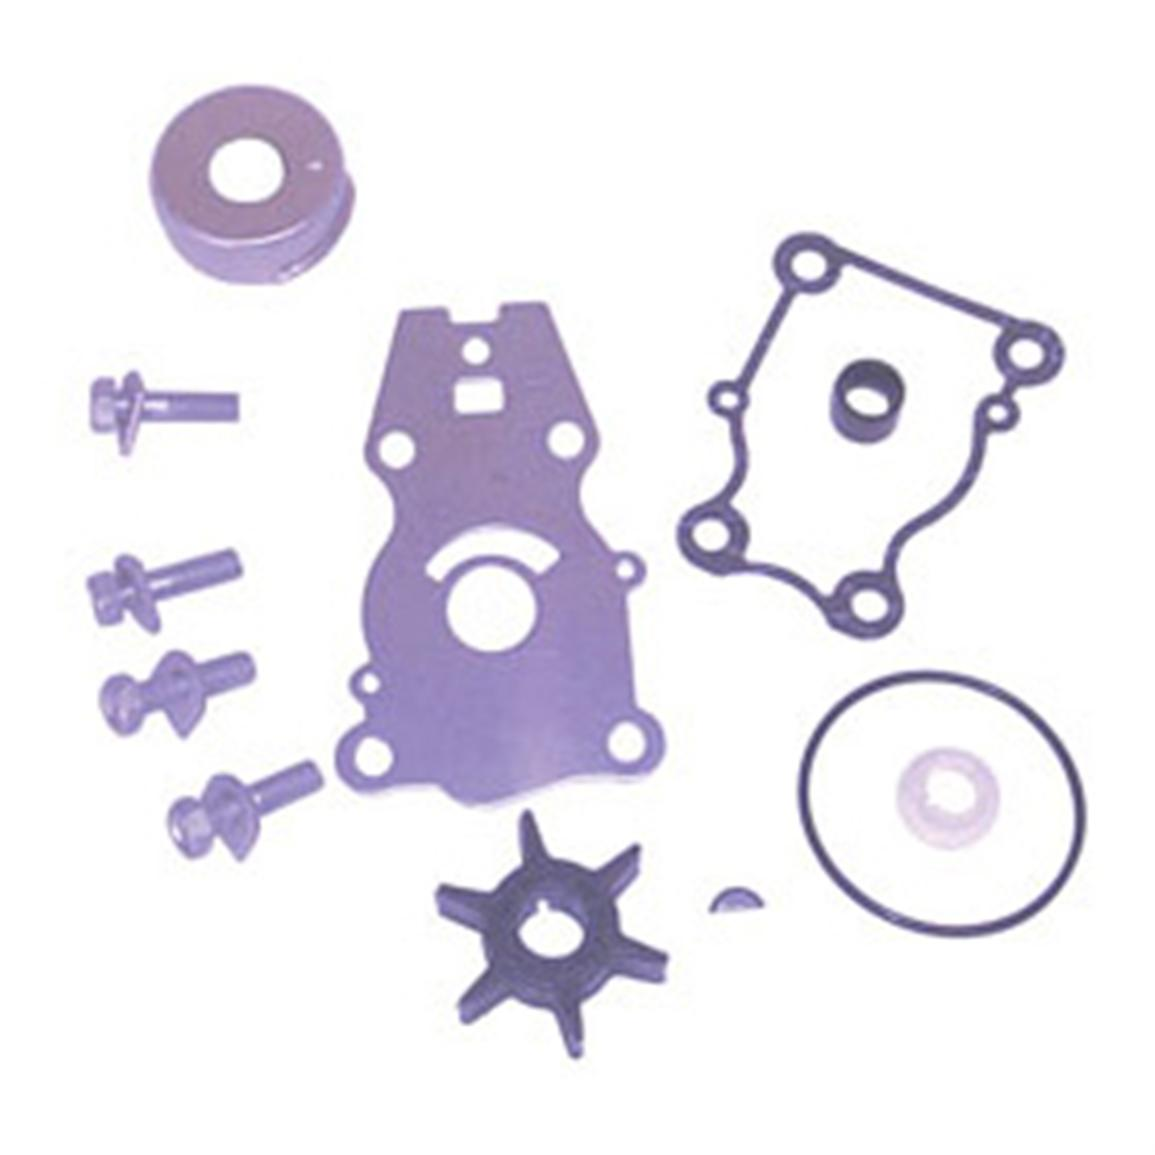 Sierra Impeller Kit for Yamaha, Replaces 66T-W0078-00-00